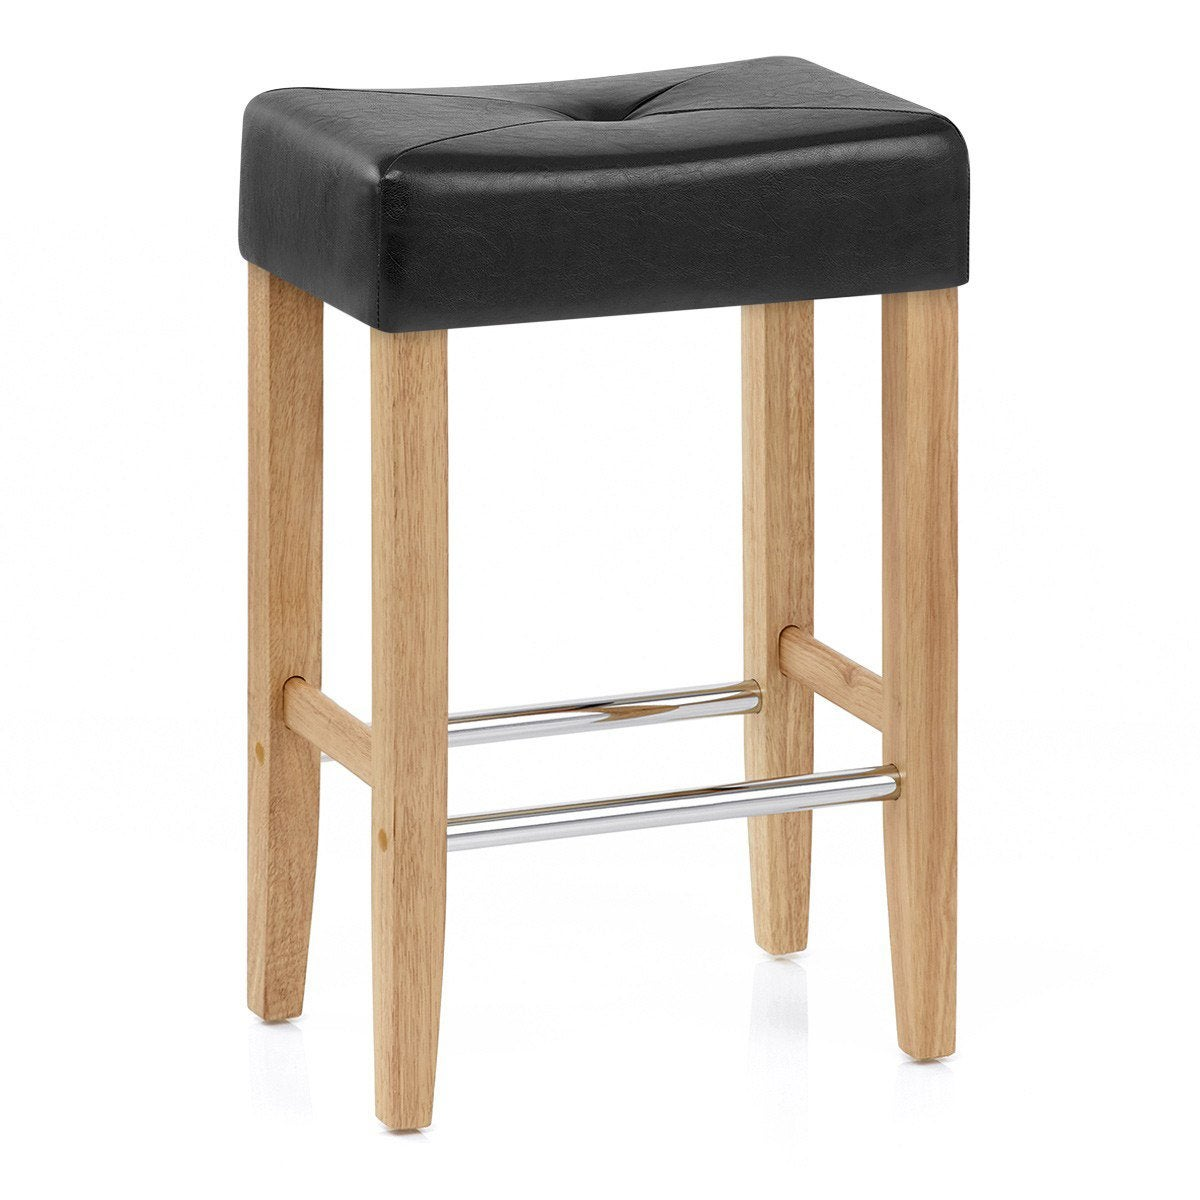 Tabouret De Bar Nature Simili Cuir Noir Otis Mdt Products En 2019 Tabouret Simili Cuir Et Bar